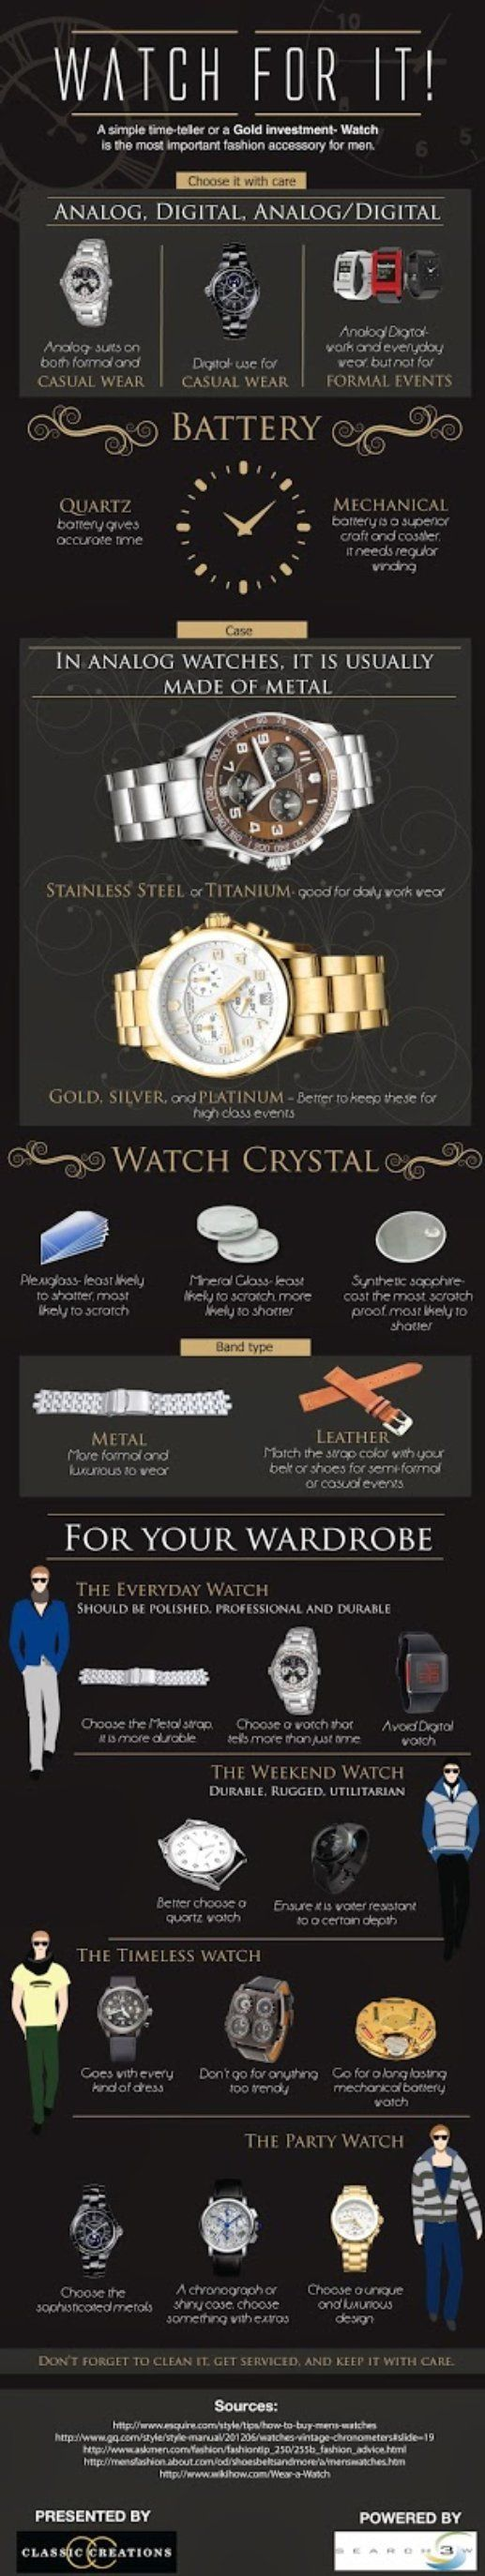 """The infographic titled """"Watch for it!"""" from Classic Creations Jewellers shares information about Men's watches. This infographic will be useful for them to know about how to wear a watch properly."""